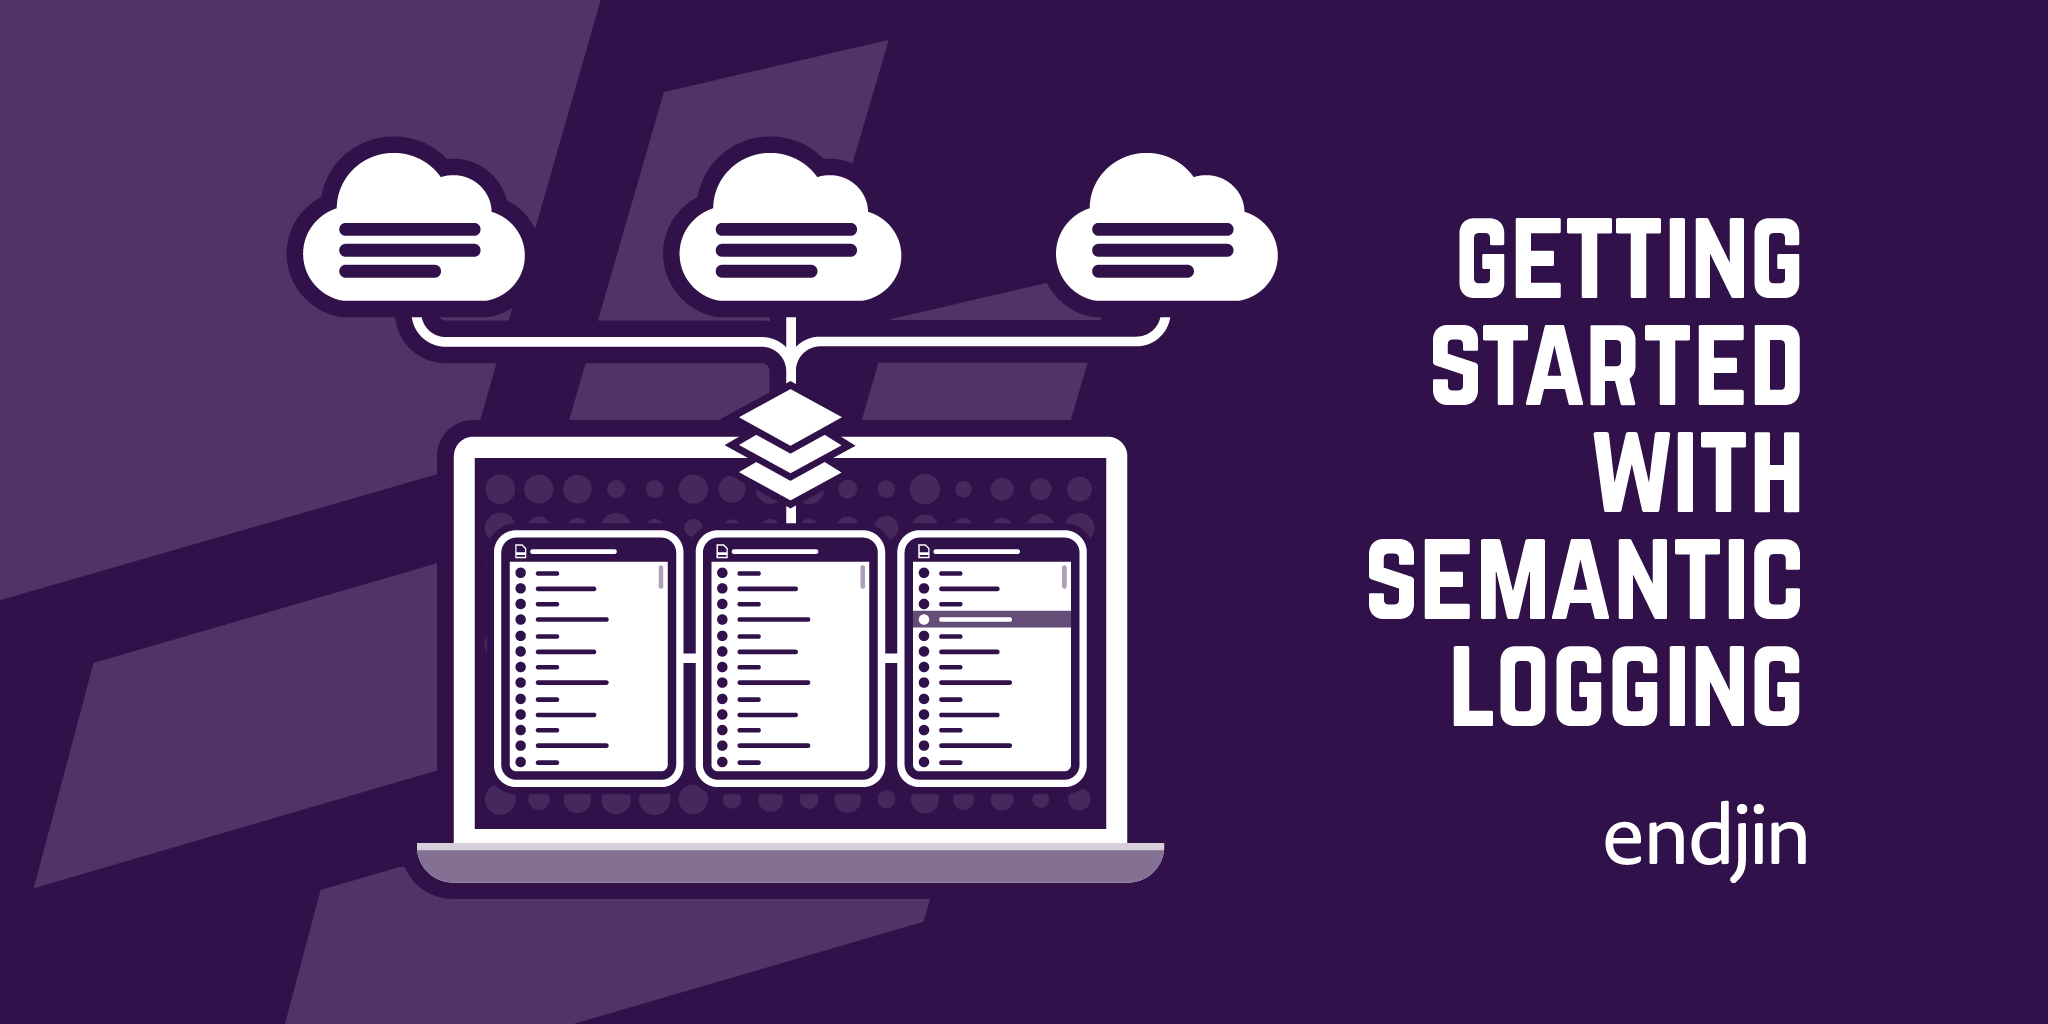 Getting started with semantic logging